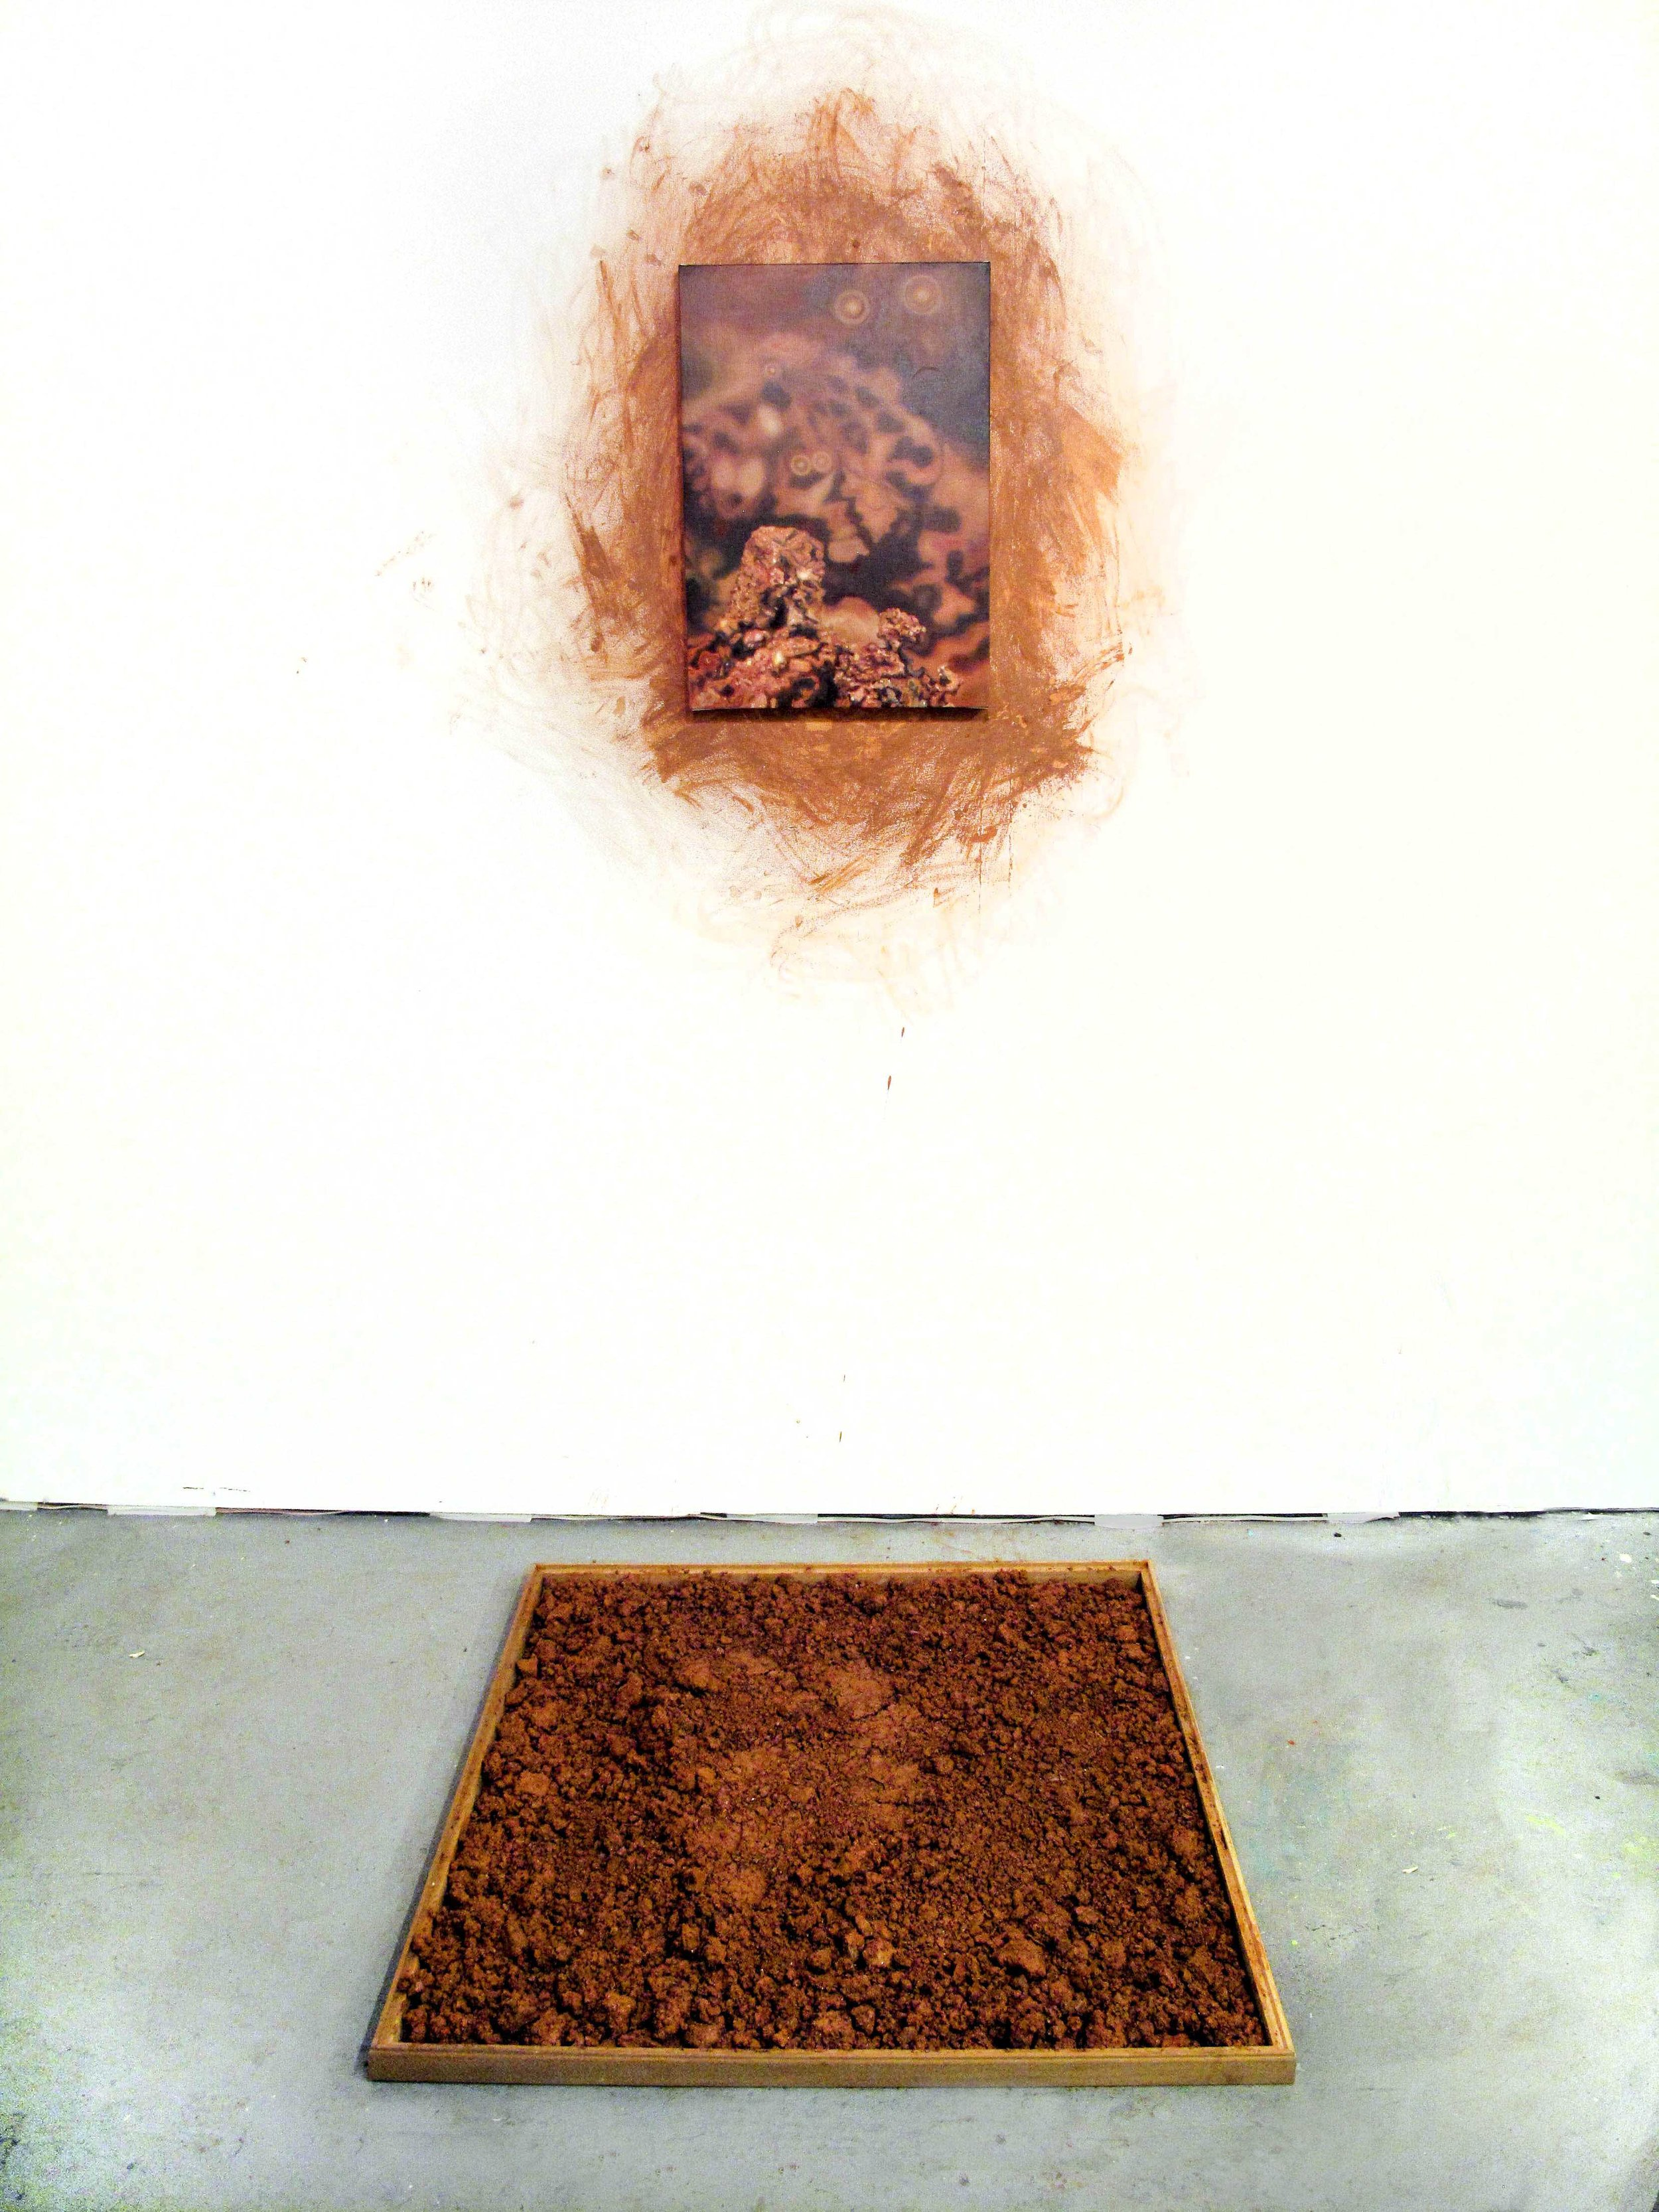 Copy of Carley, Amelia %22breathless city of a hundred hills (study of Georgia soil)%22 oil on canvas, georgia soil, wood_about 78Hx42Wx46L_2016.jpg